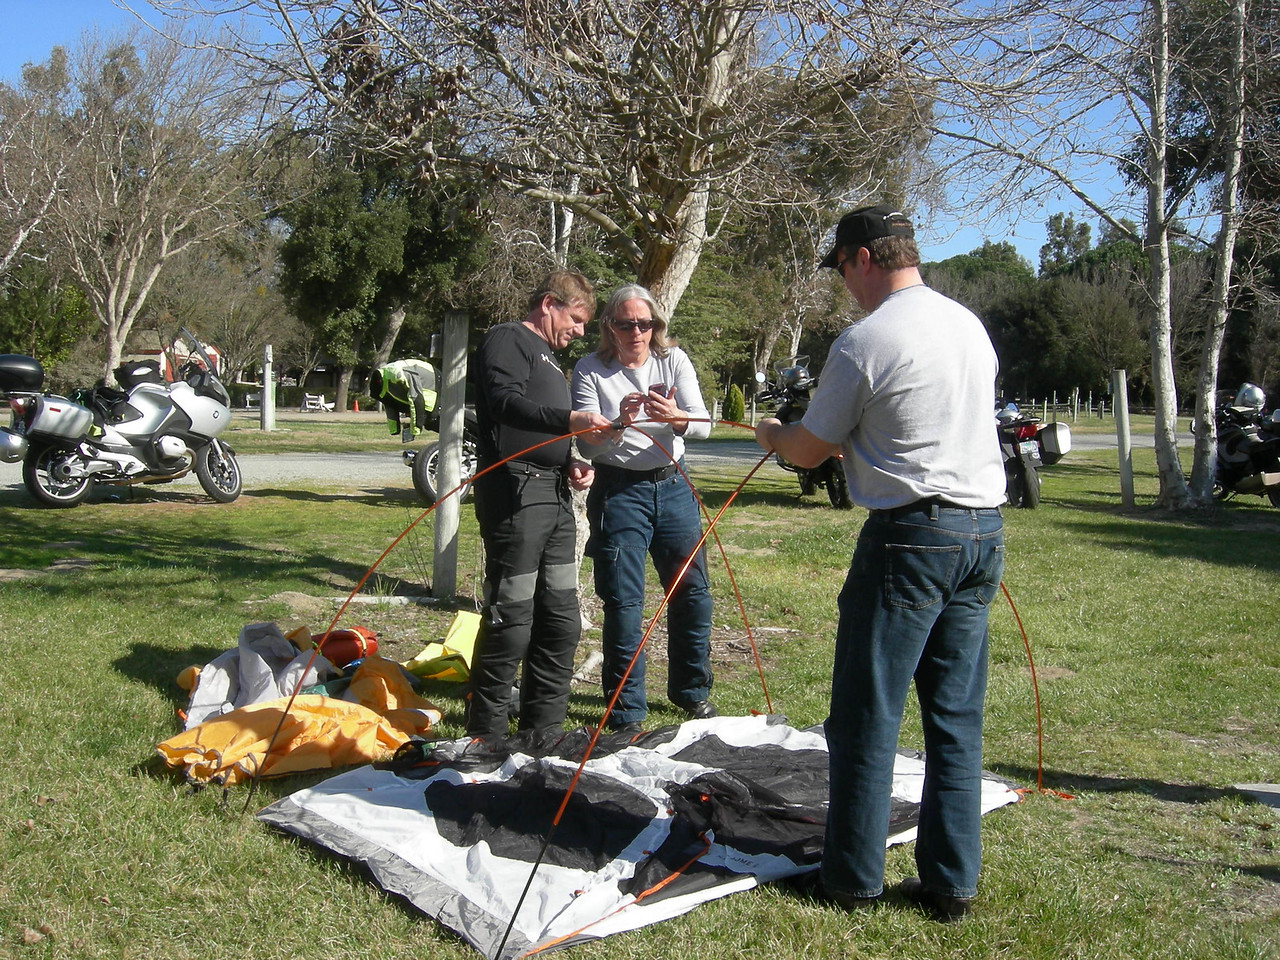 Joyce gets some help setting up her tent from Don Alexson and Jim Lucas.